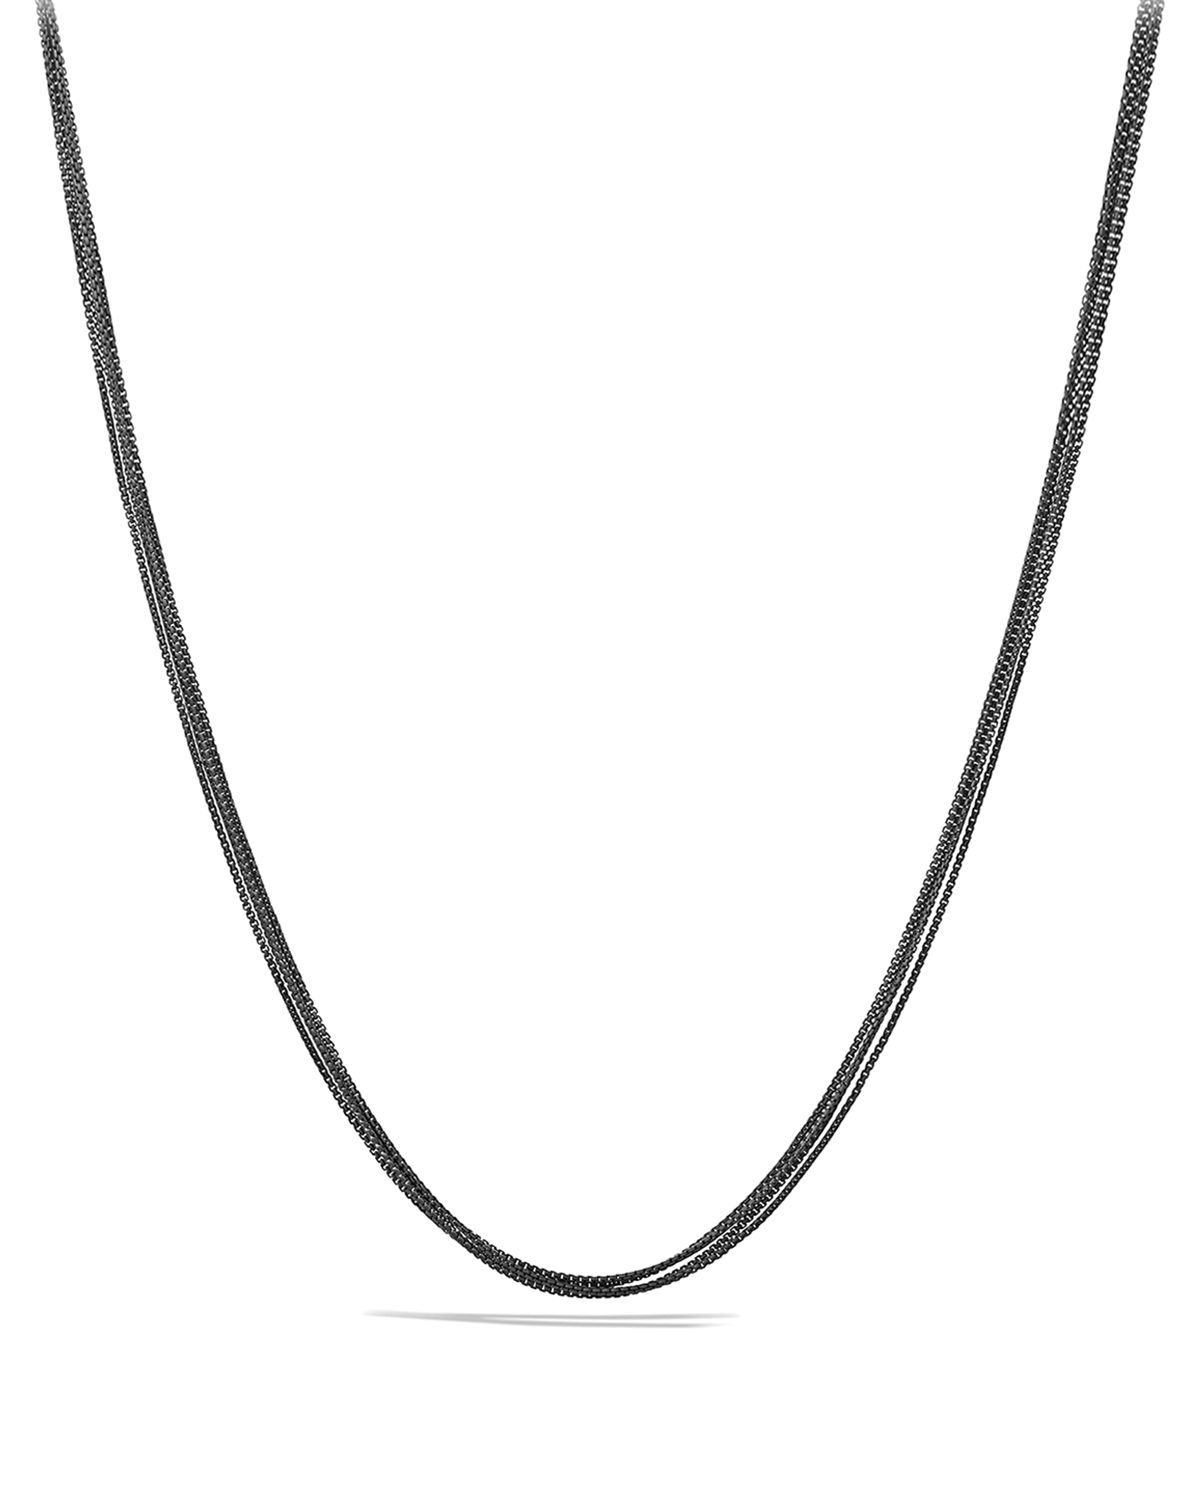 David Yurman Four-row Baby Box Chain Necklace in Silver